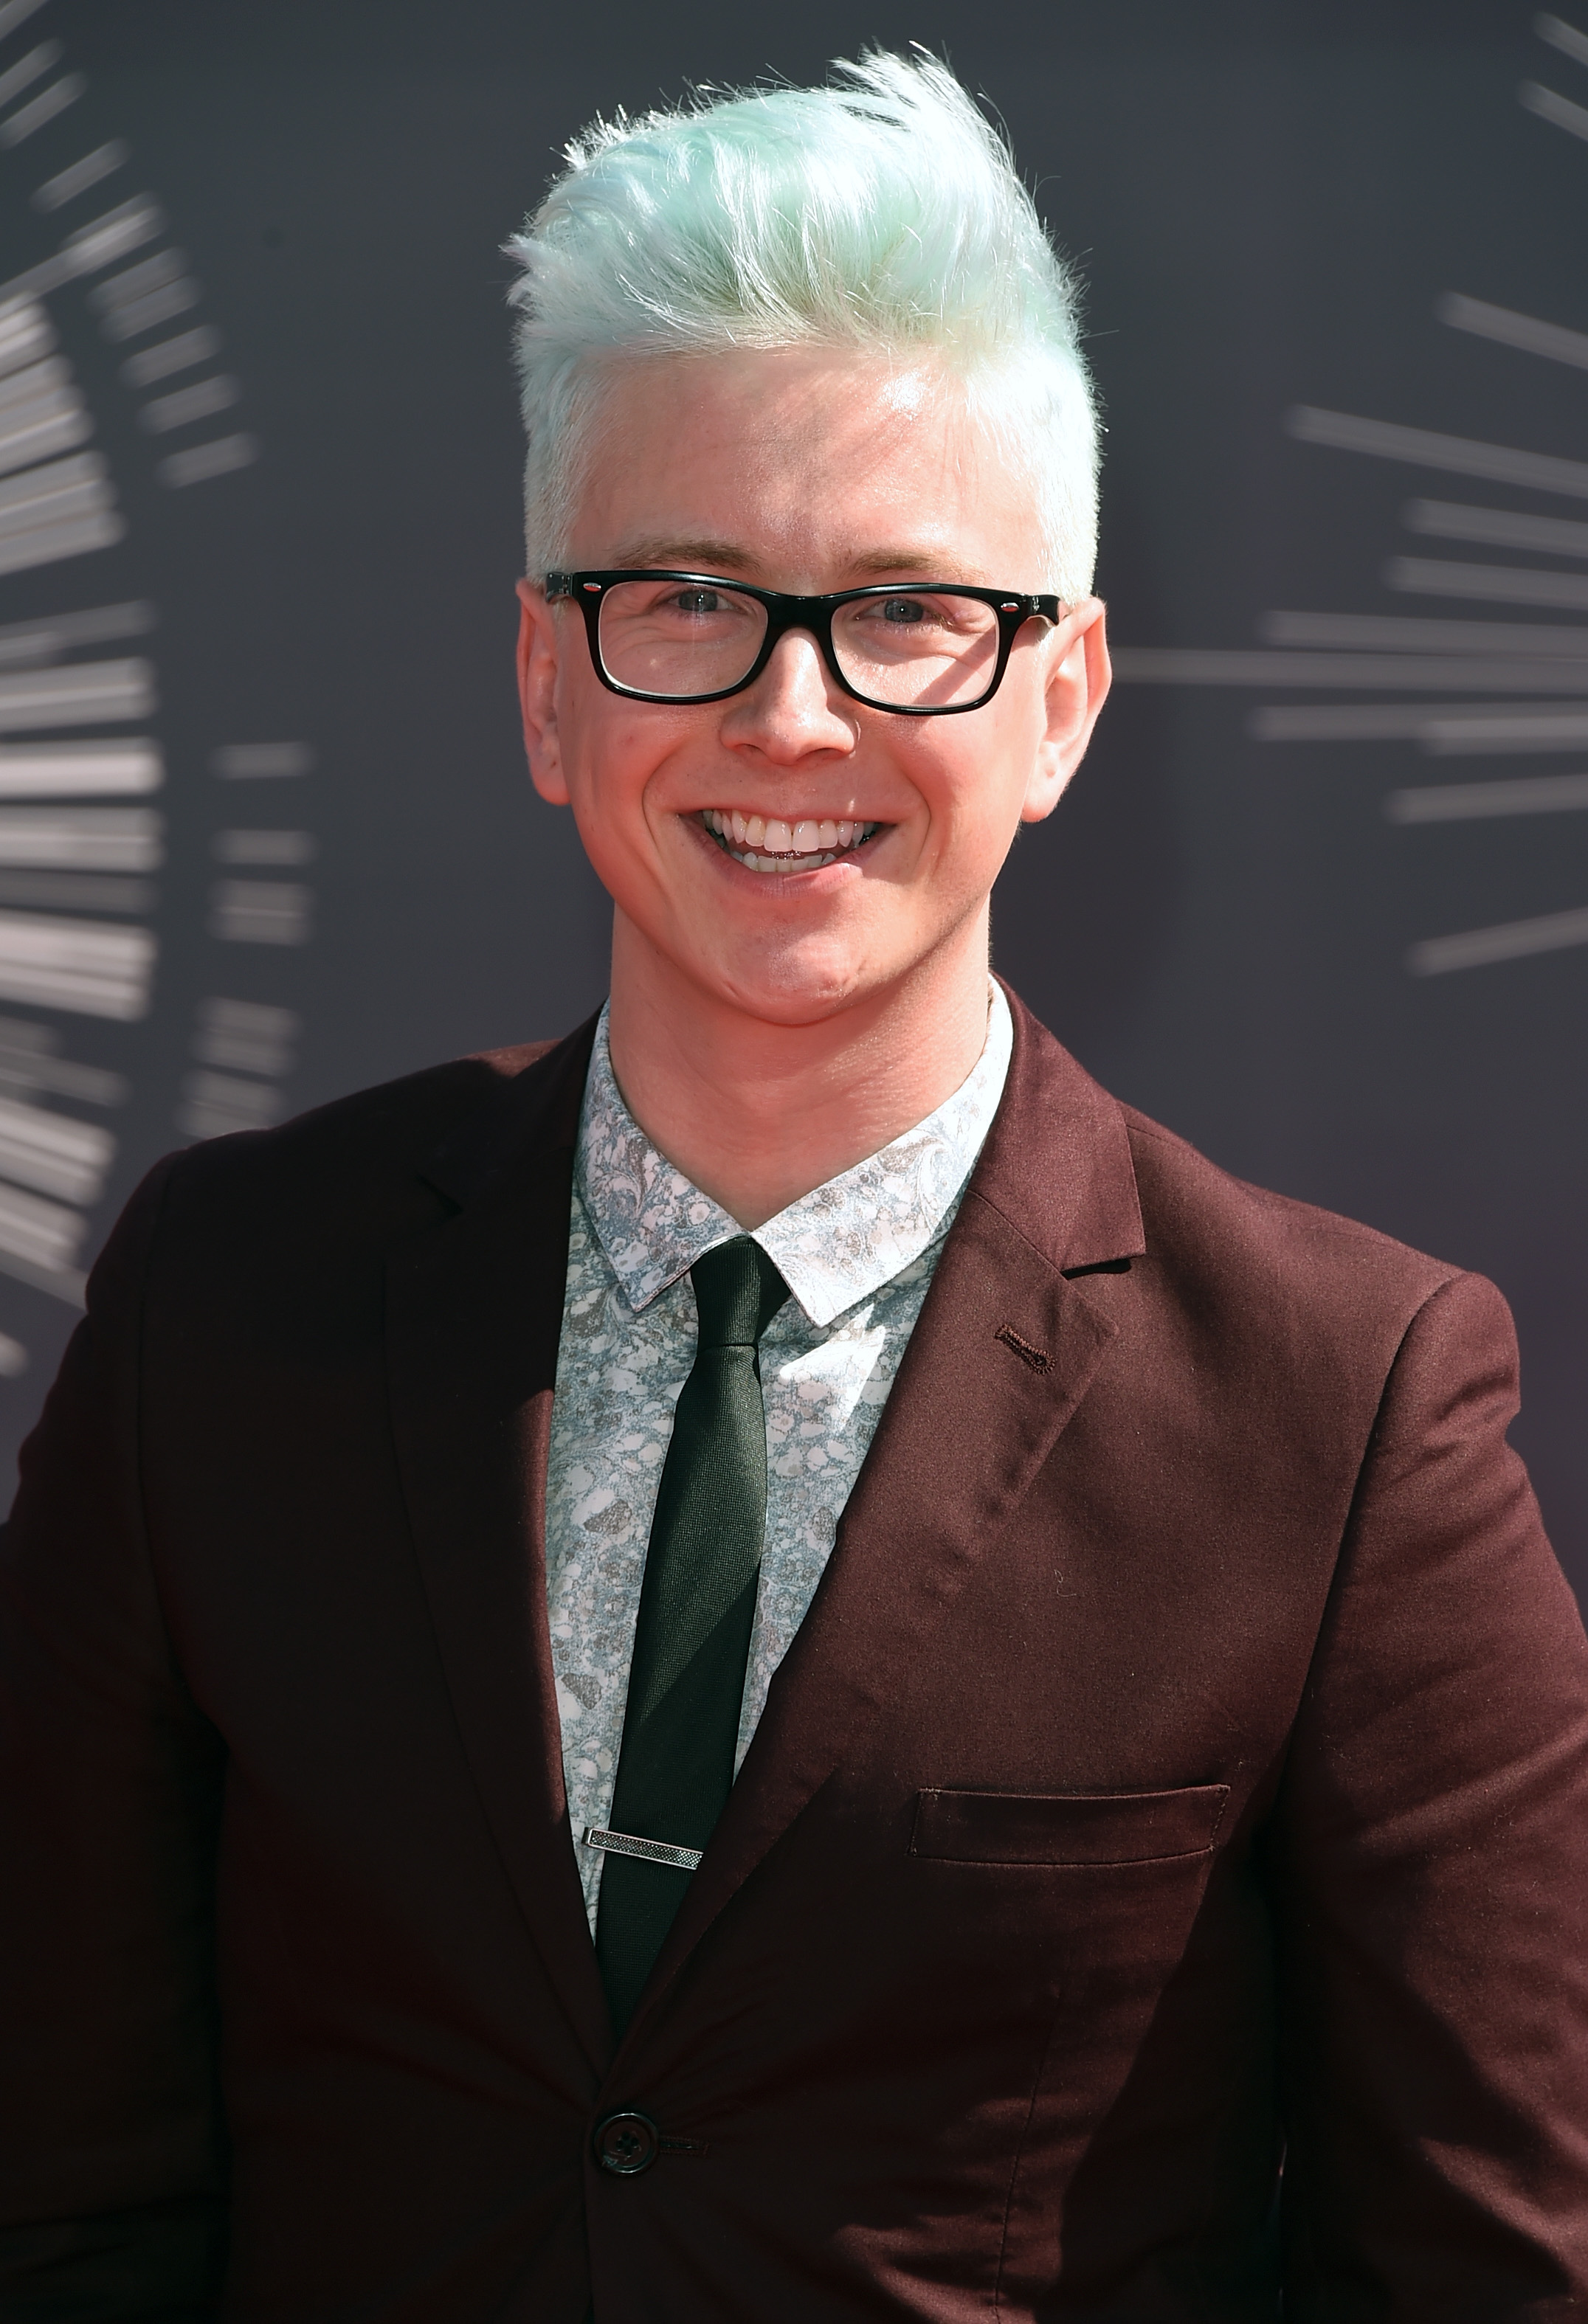 Tyler Oakley attends the 2014 MTV Video Music Awards at The Forum on August 24, 2014 in Inglewood, California.